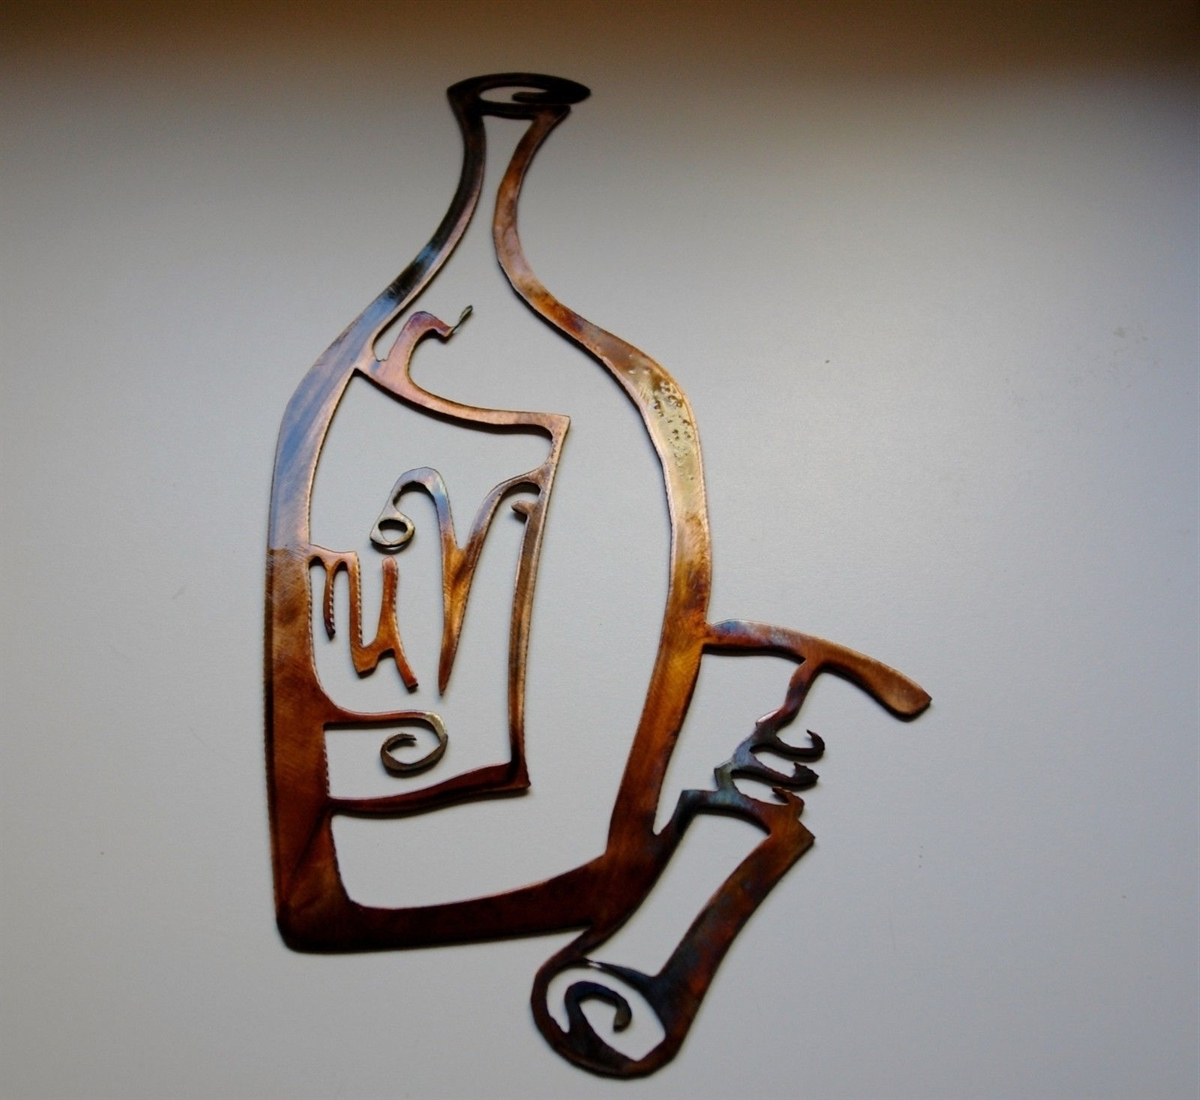 Vino! Metal Wall Art Decor, Wine Bottle And Opener Copper & Bronze Within Newest Wine Metal Wall Art (View 6 of 15)